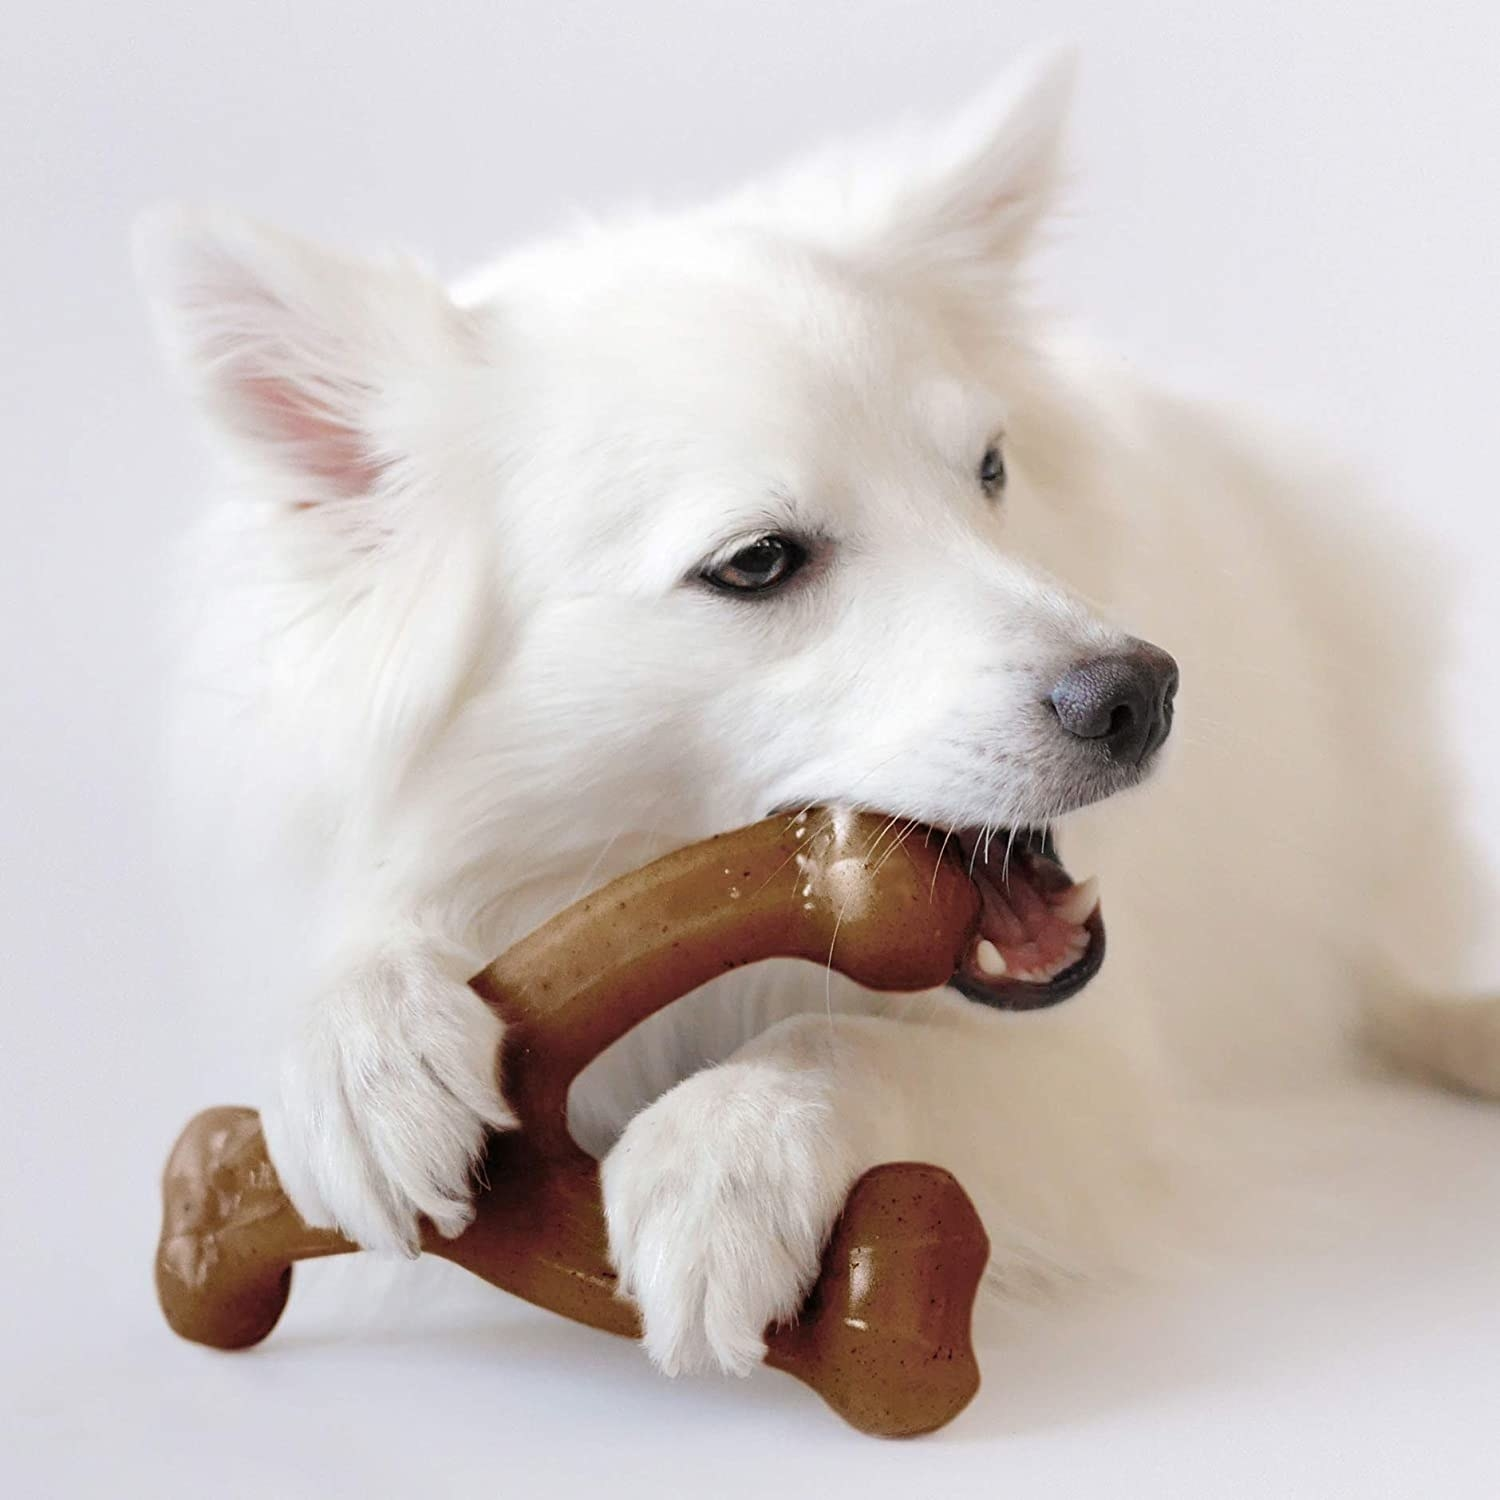 White dog chewing on the Y-shaped toy